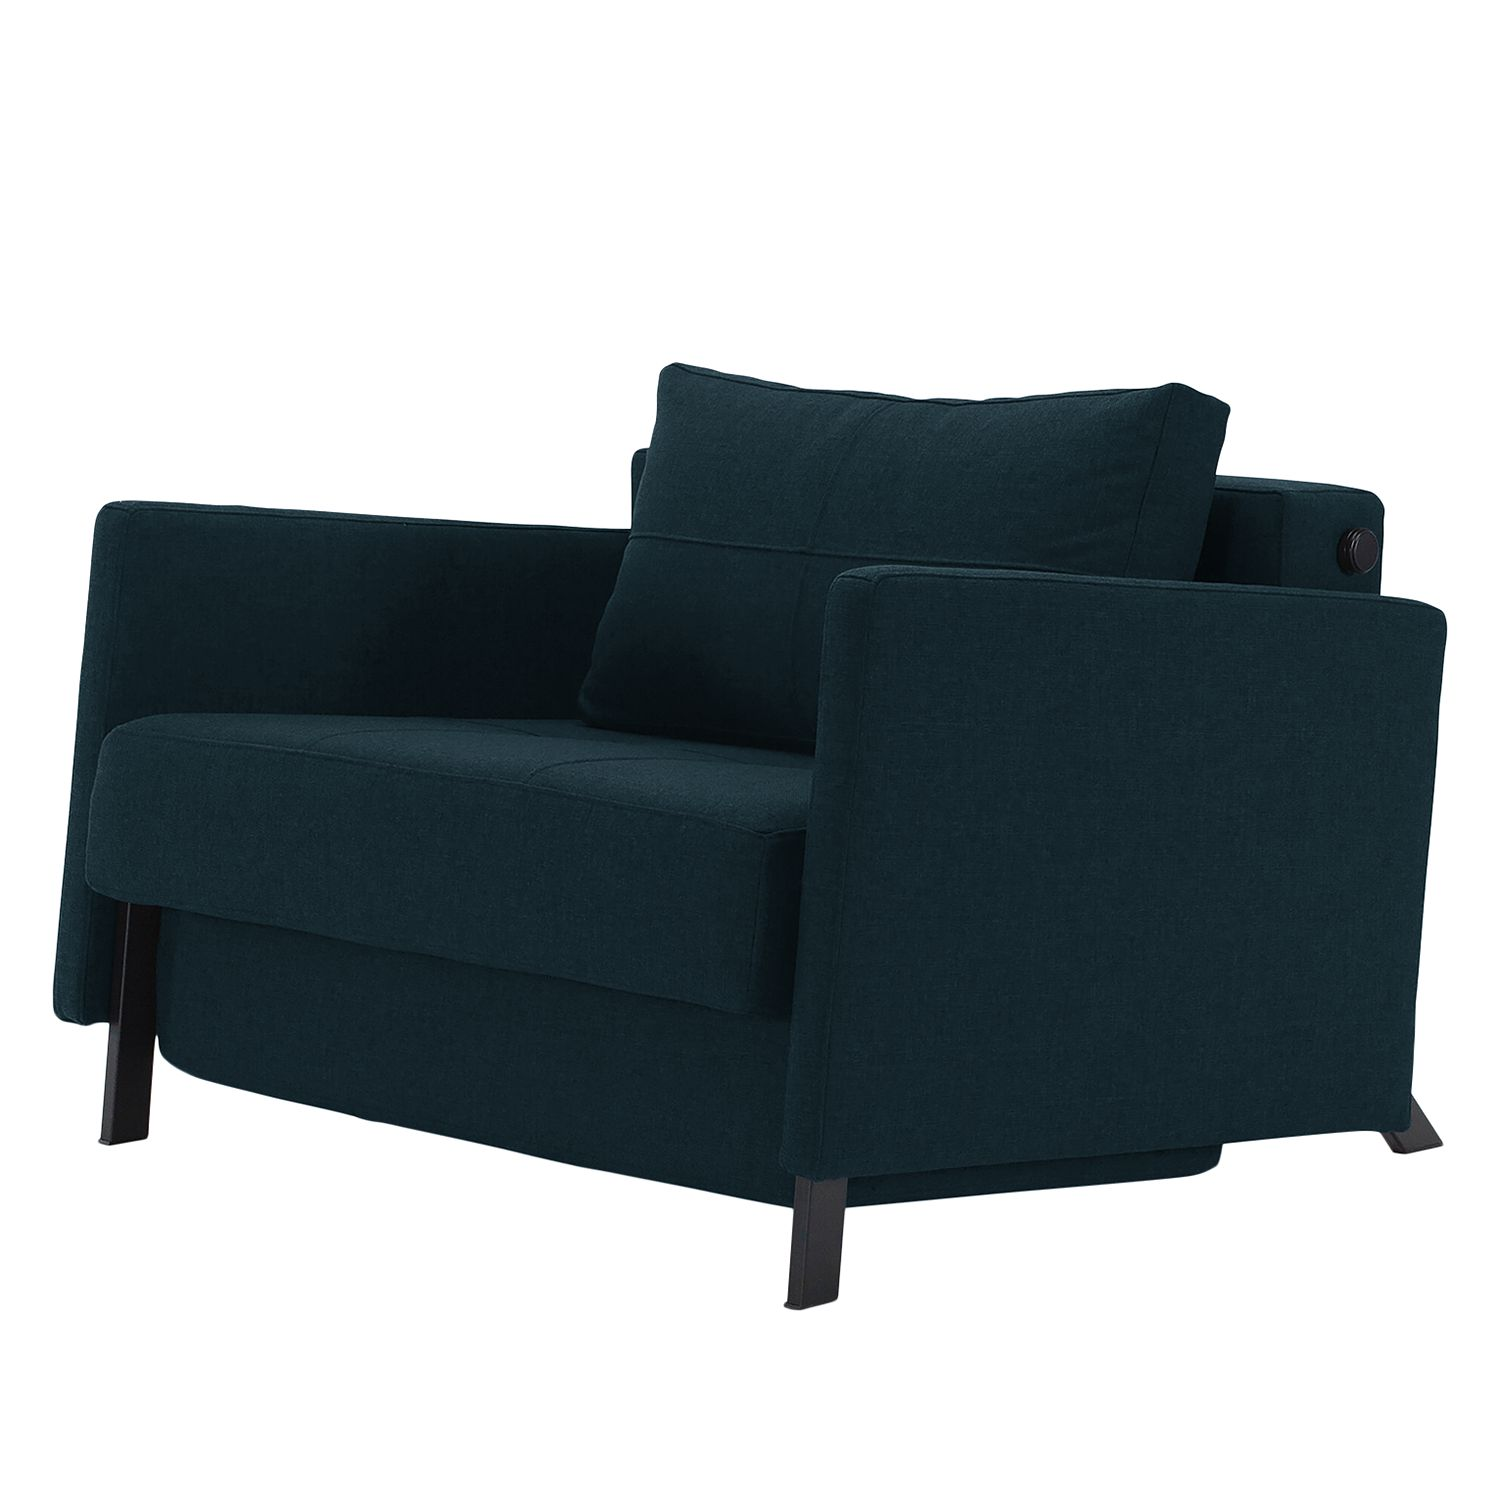 Fauteuil convertible Cubed 90 I